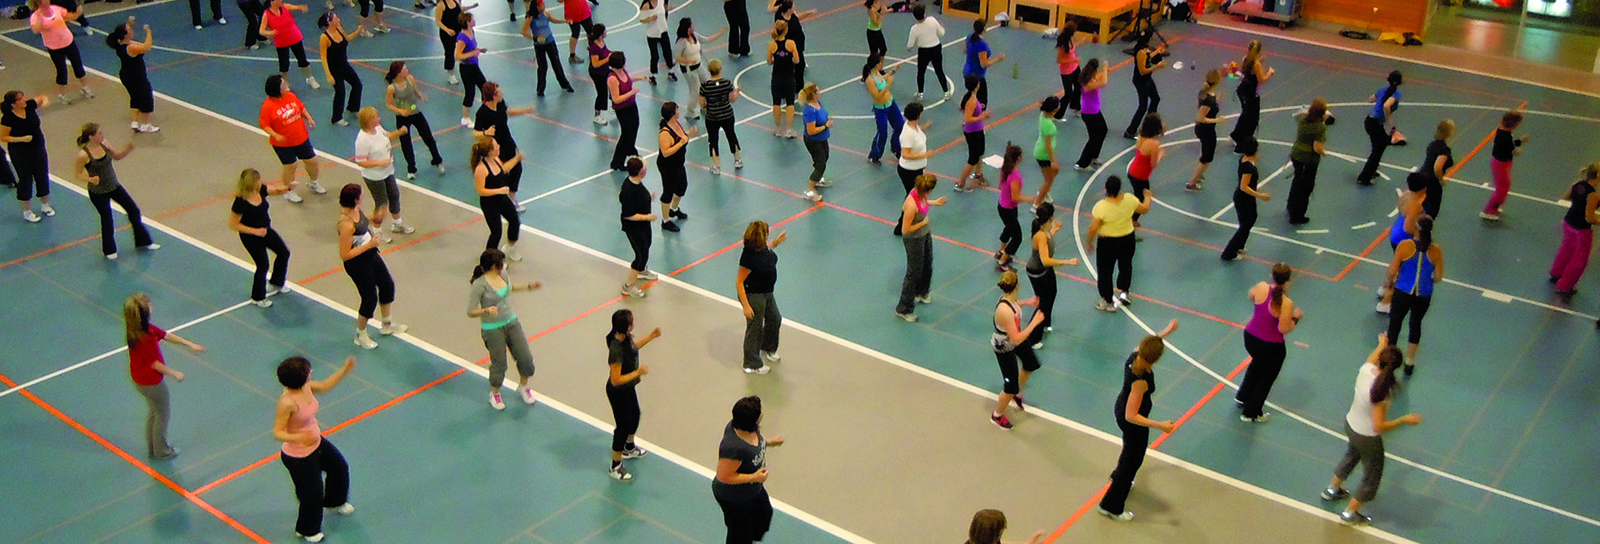 A zumba class at the Recreation Complex